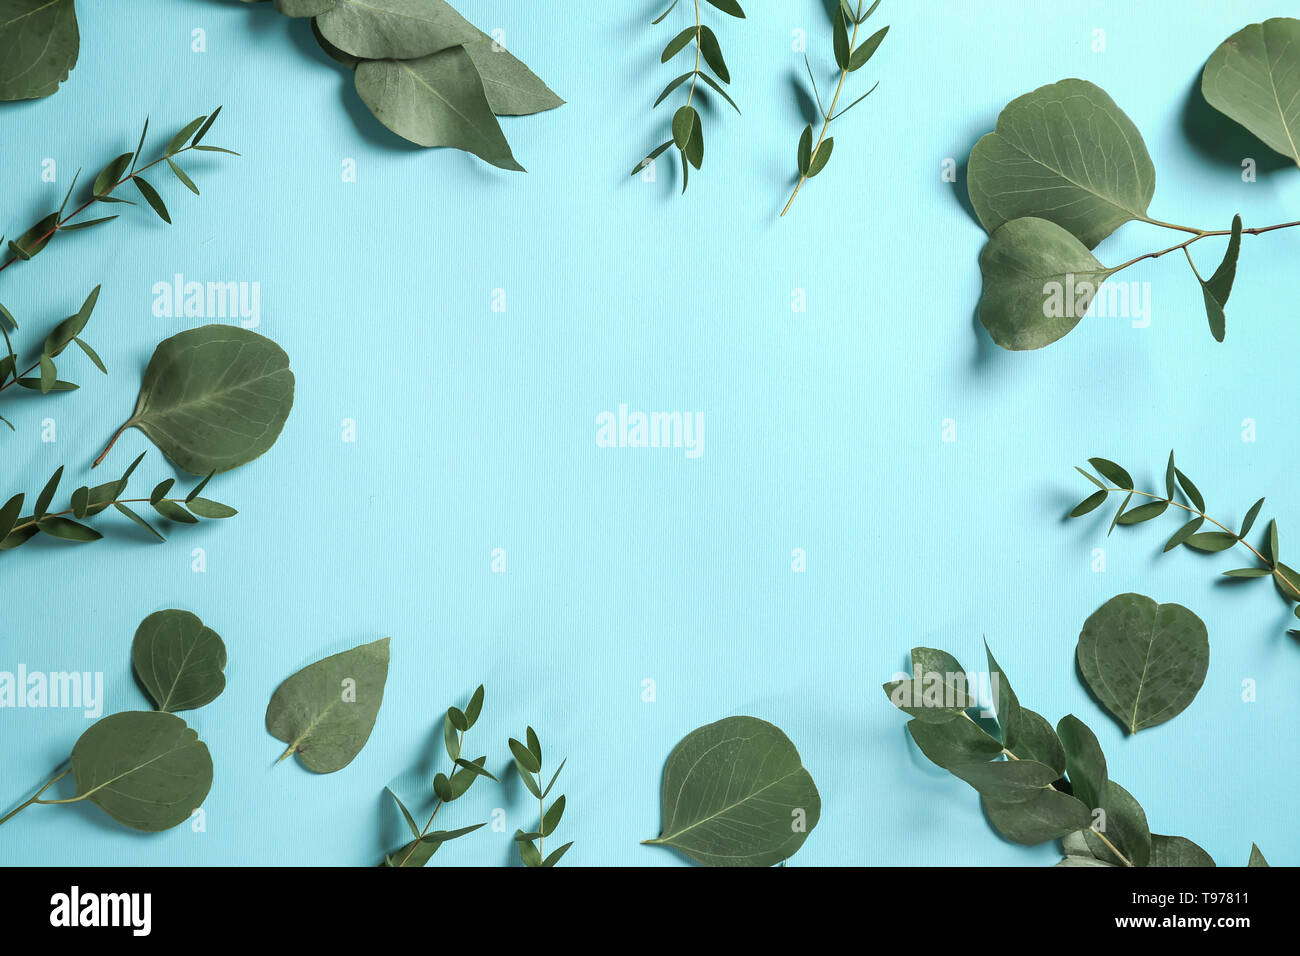 Frame made of green eucalyptus branches on color background - Stock Image